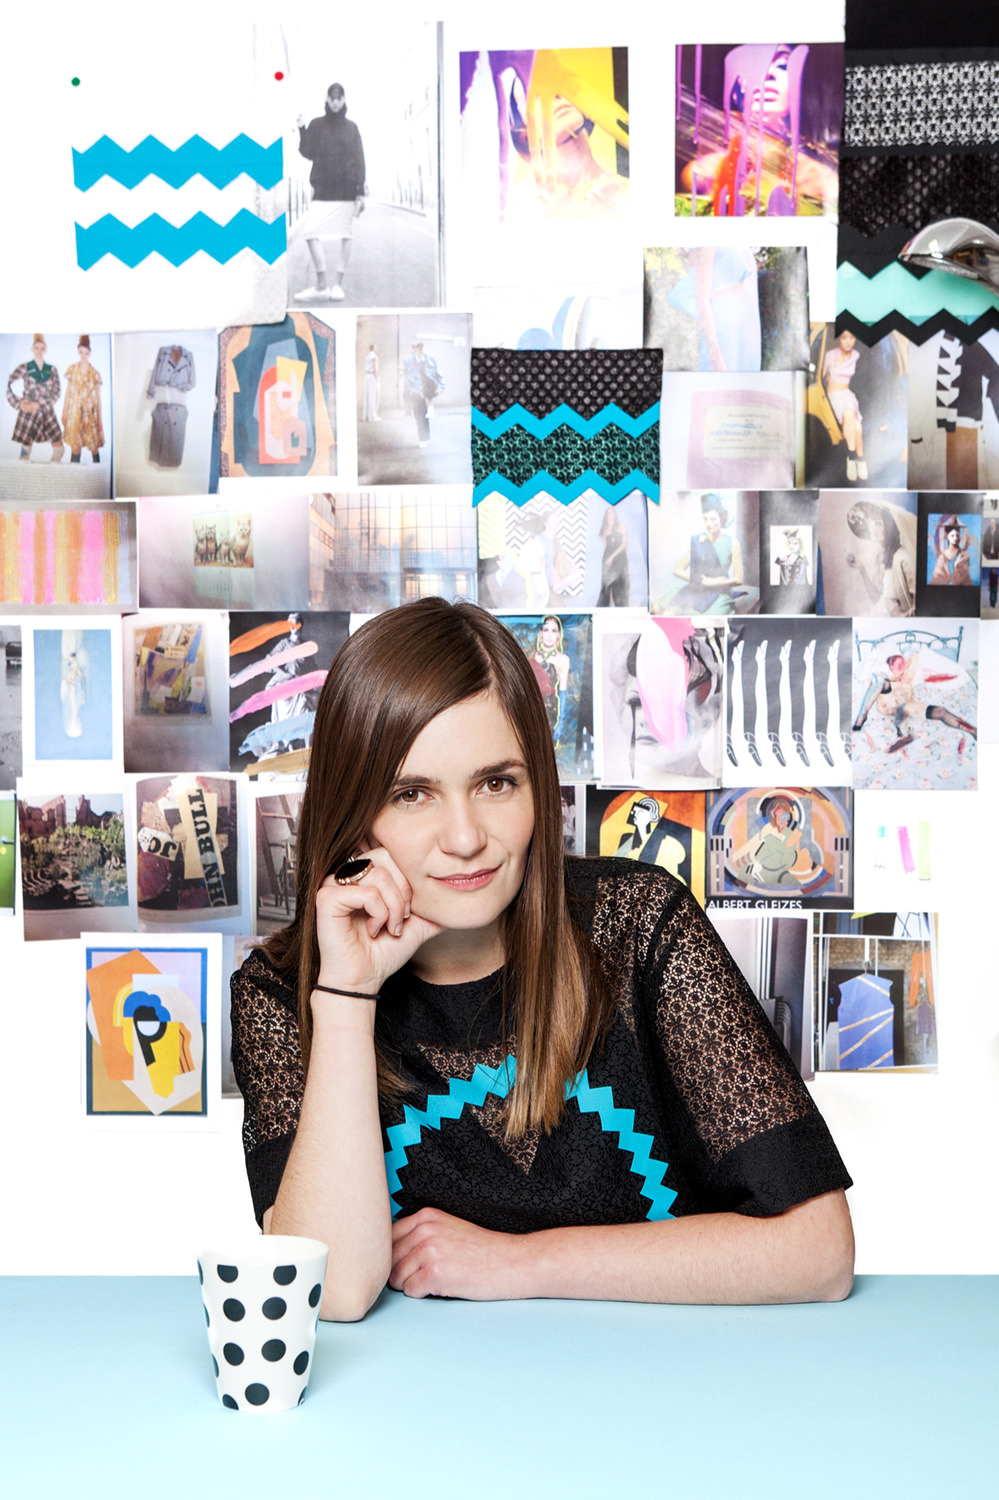 Portrait of designer Danielle Romeril